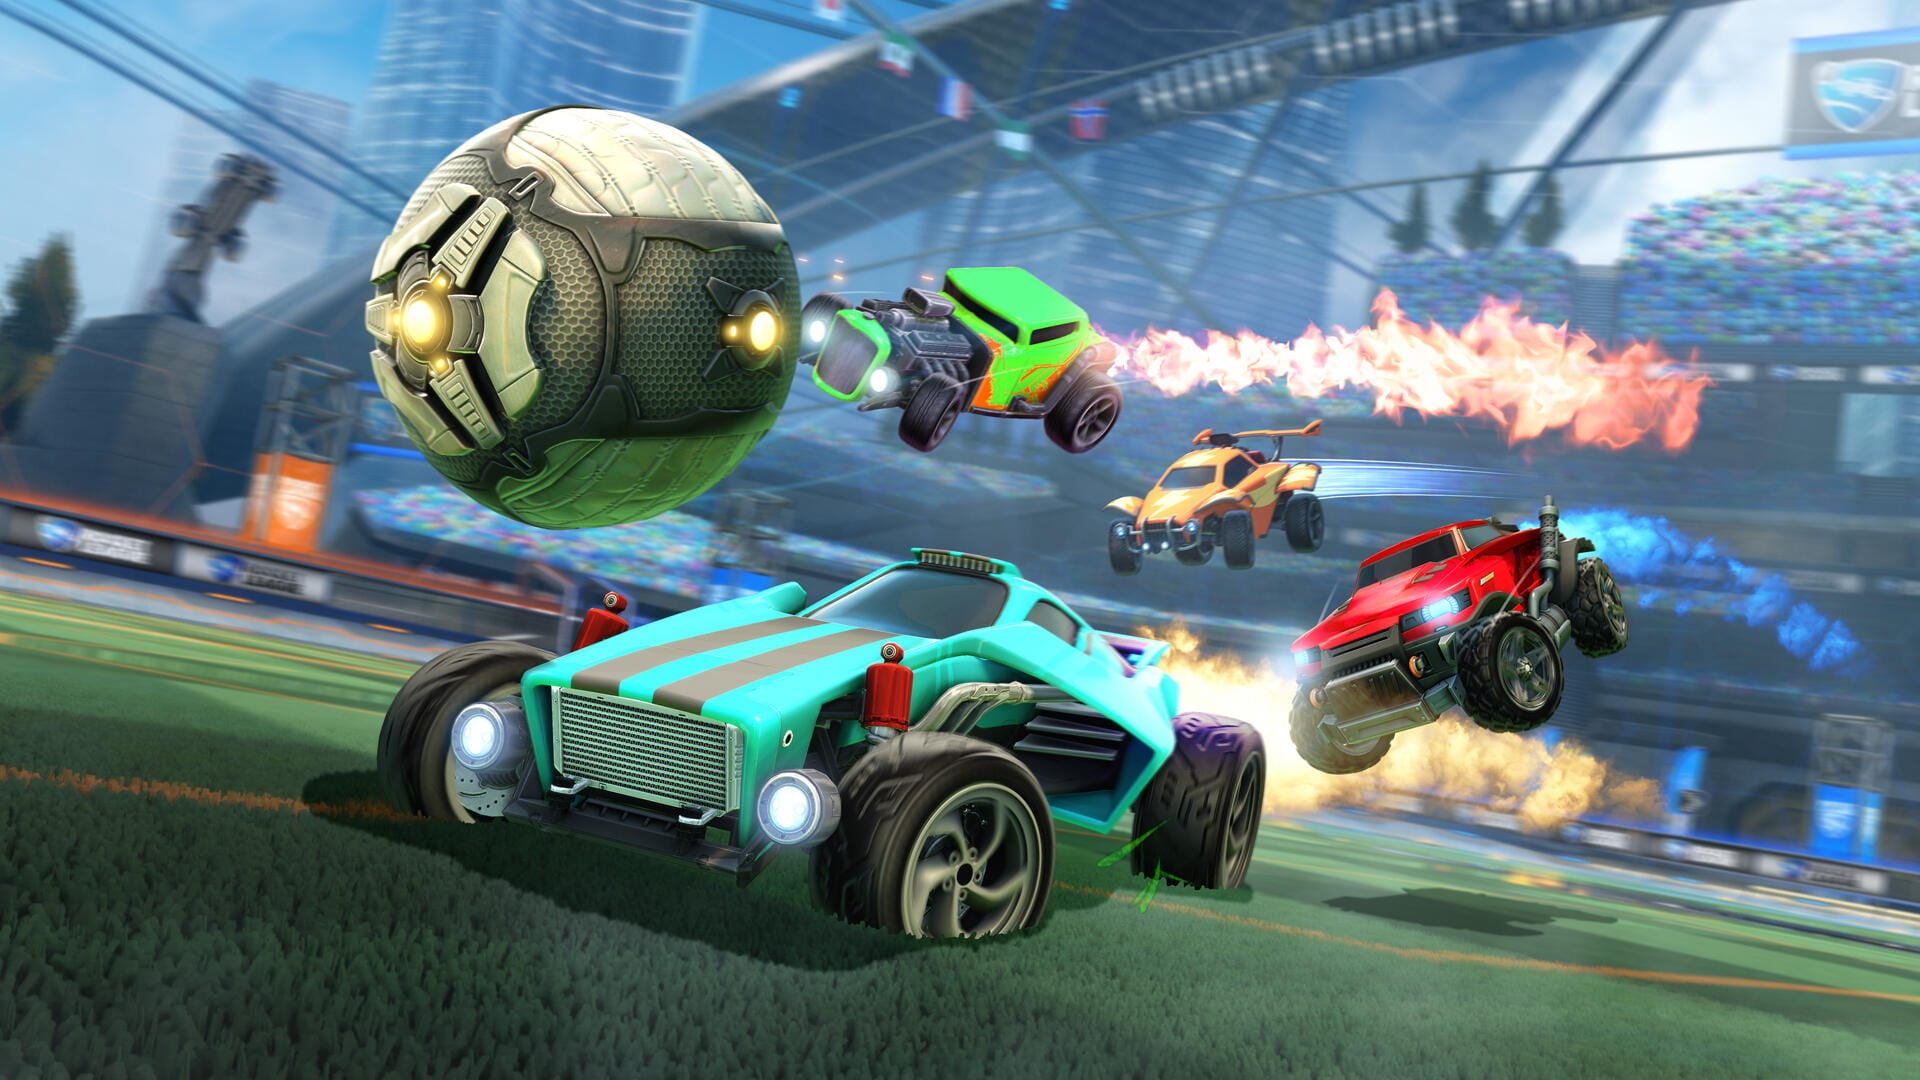 Rocket league free to play epic games ps4